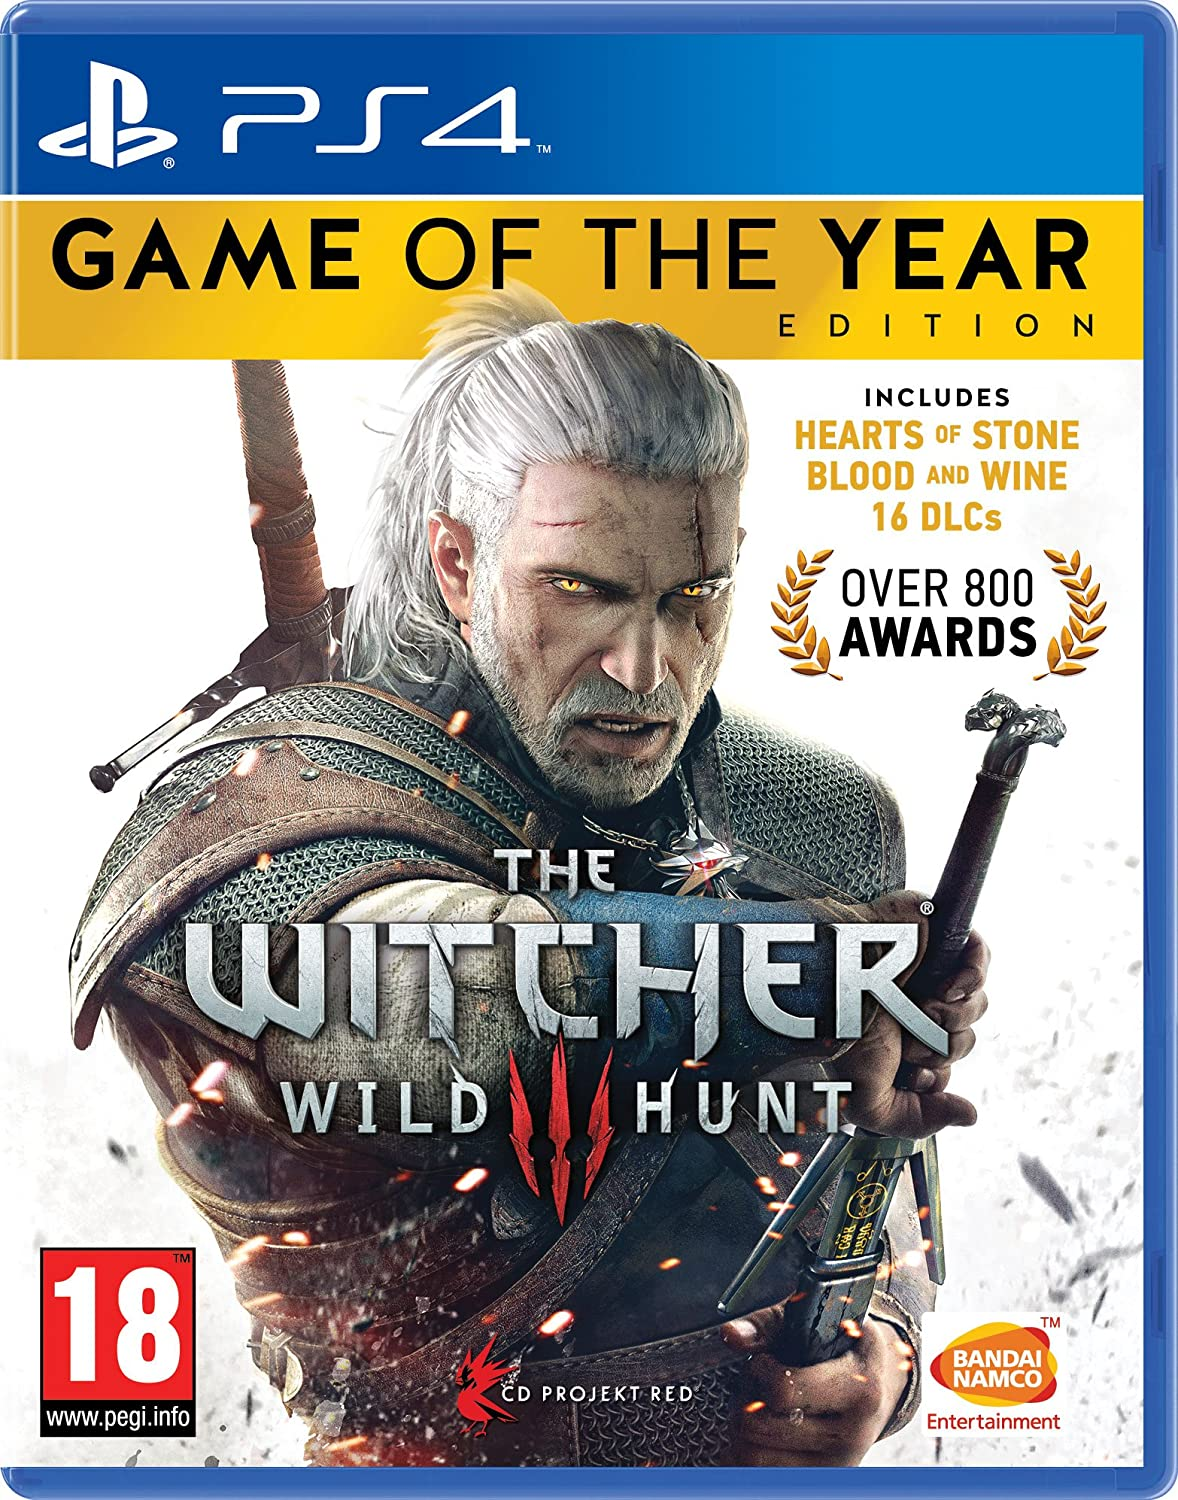 The Witcher 3 Game of the Year Edition (PS4): Amazon co uk